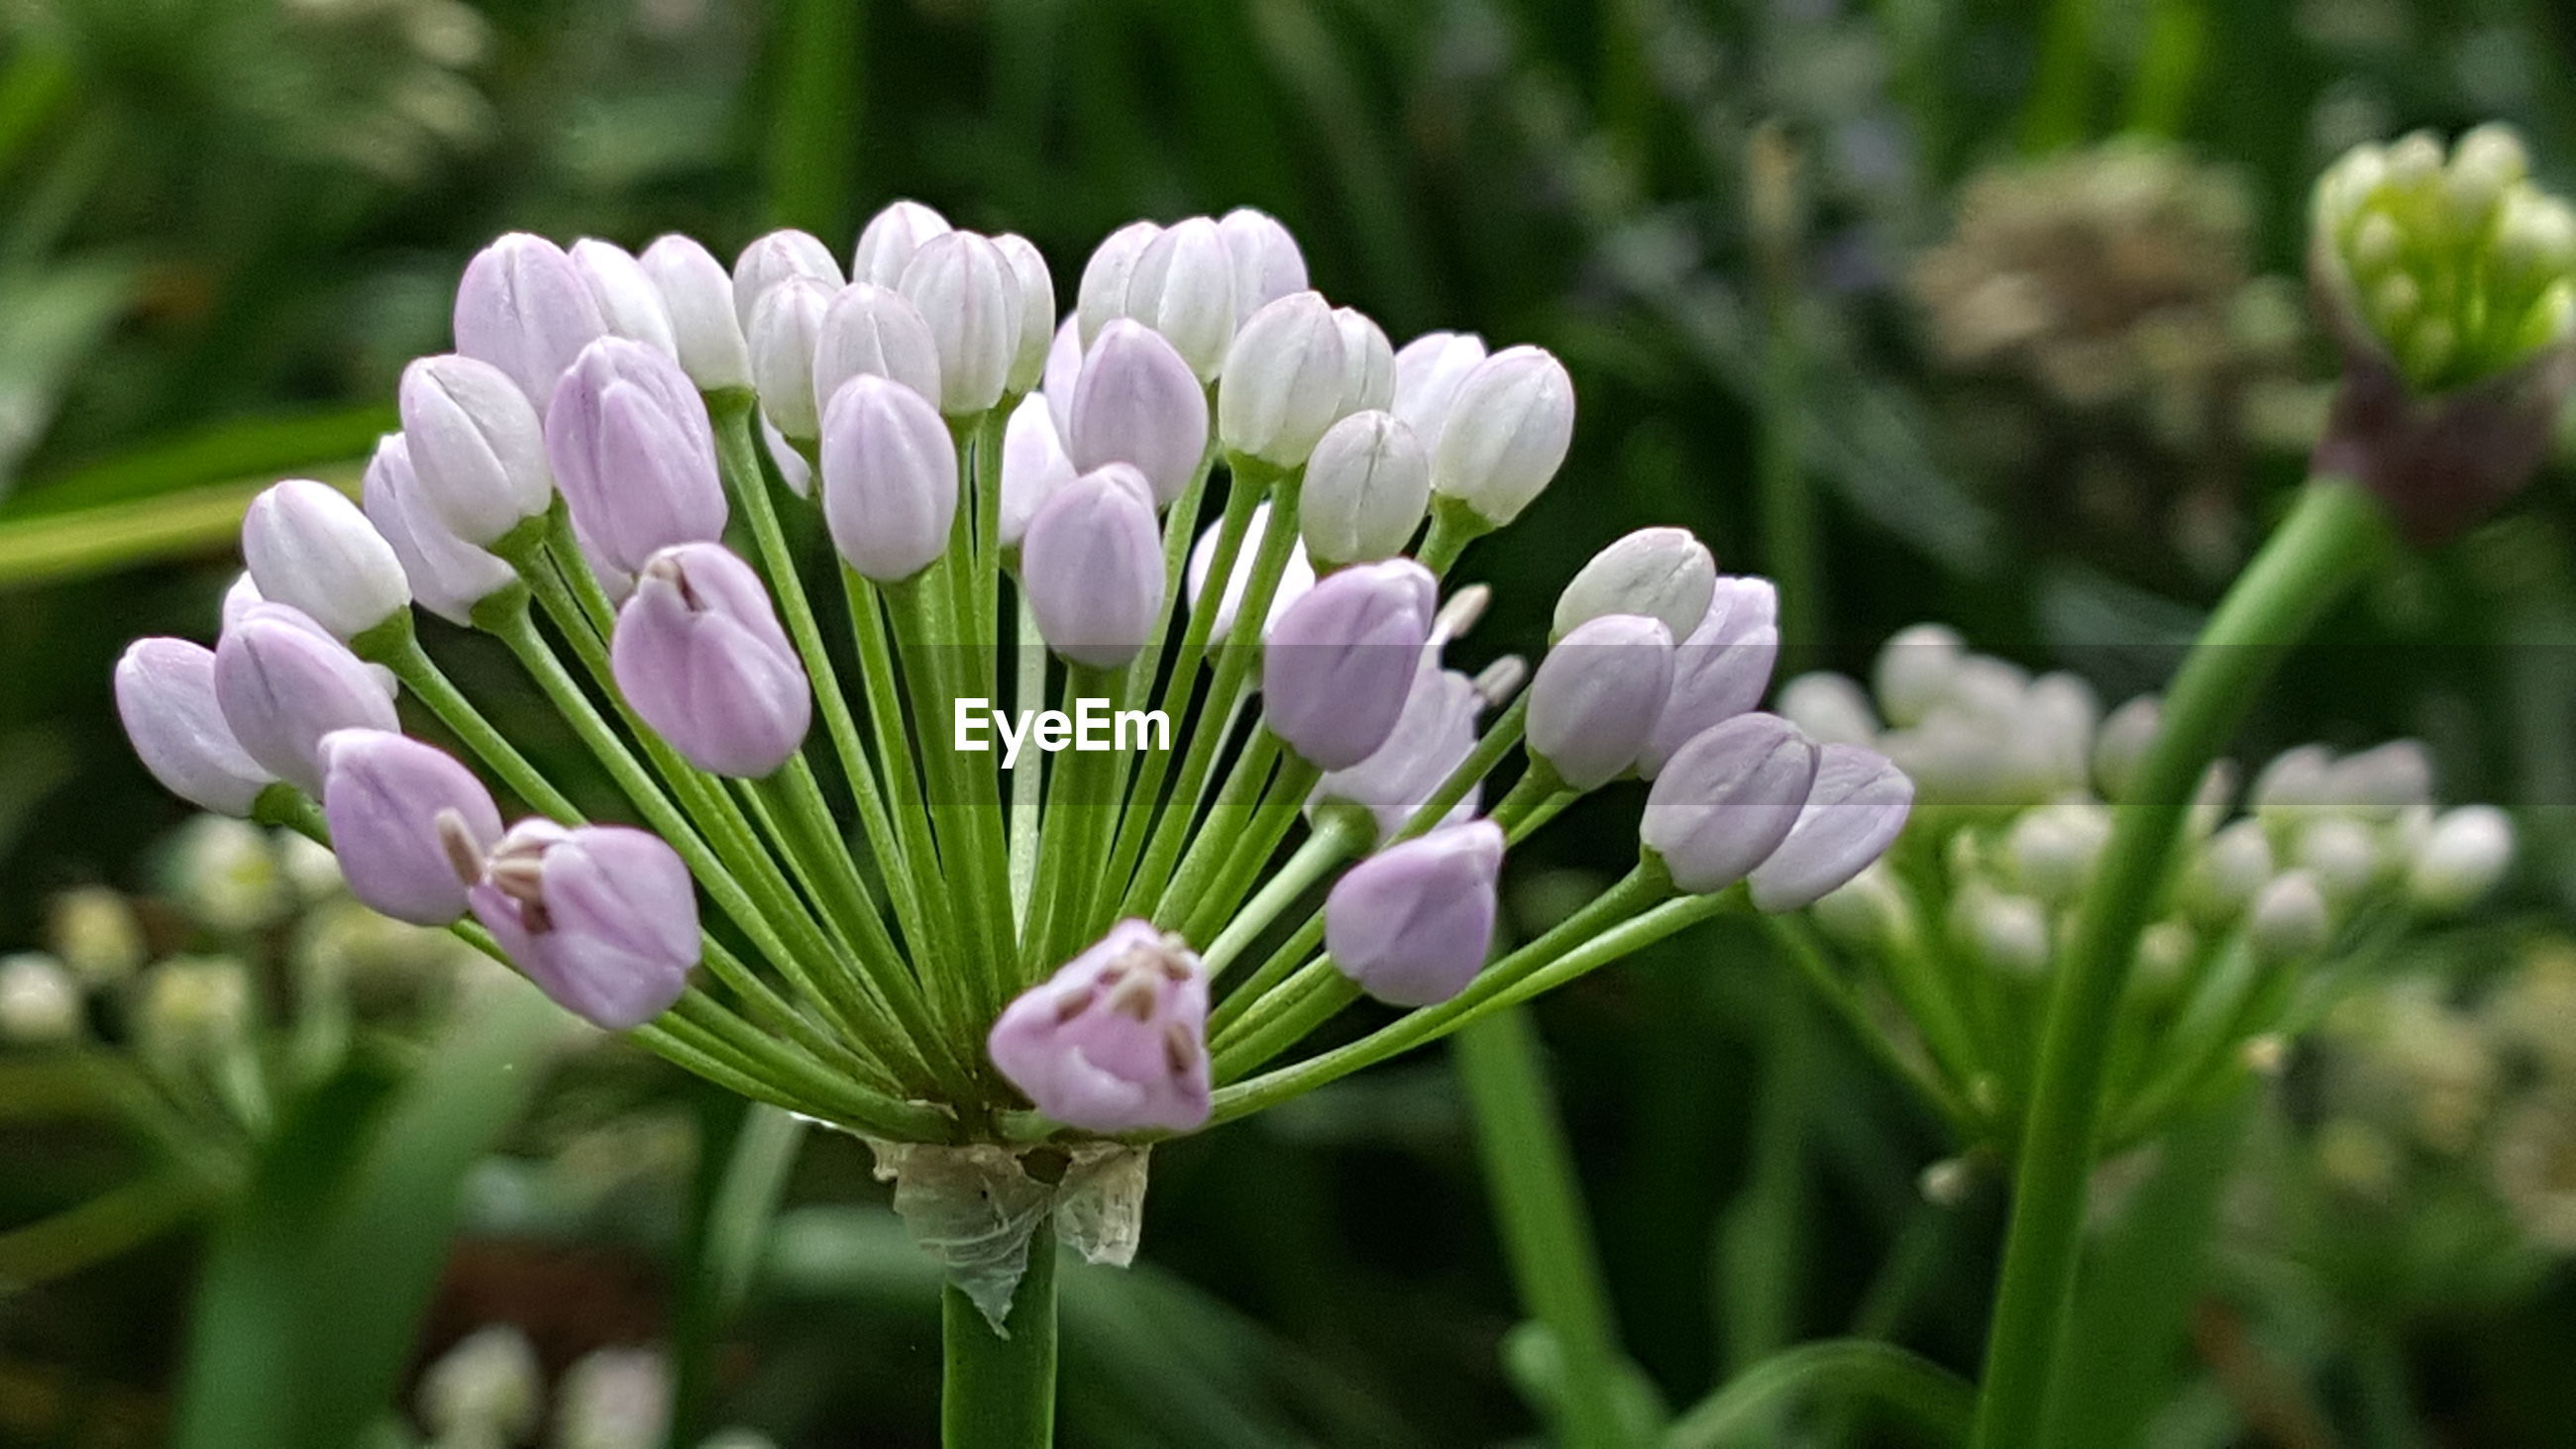 CLOSE-UP OF FLOWERS BLOOMING